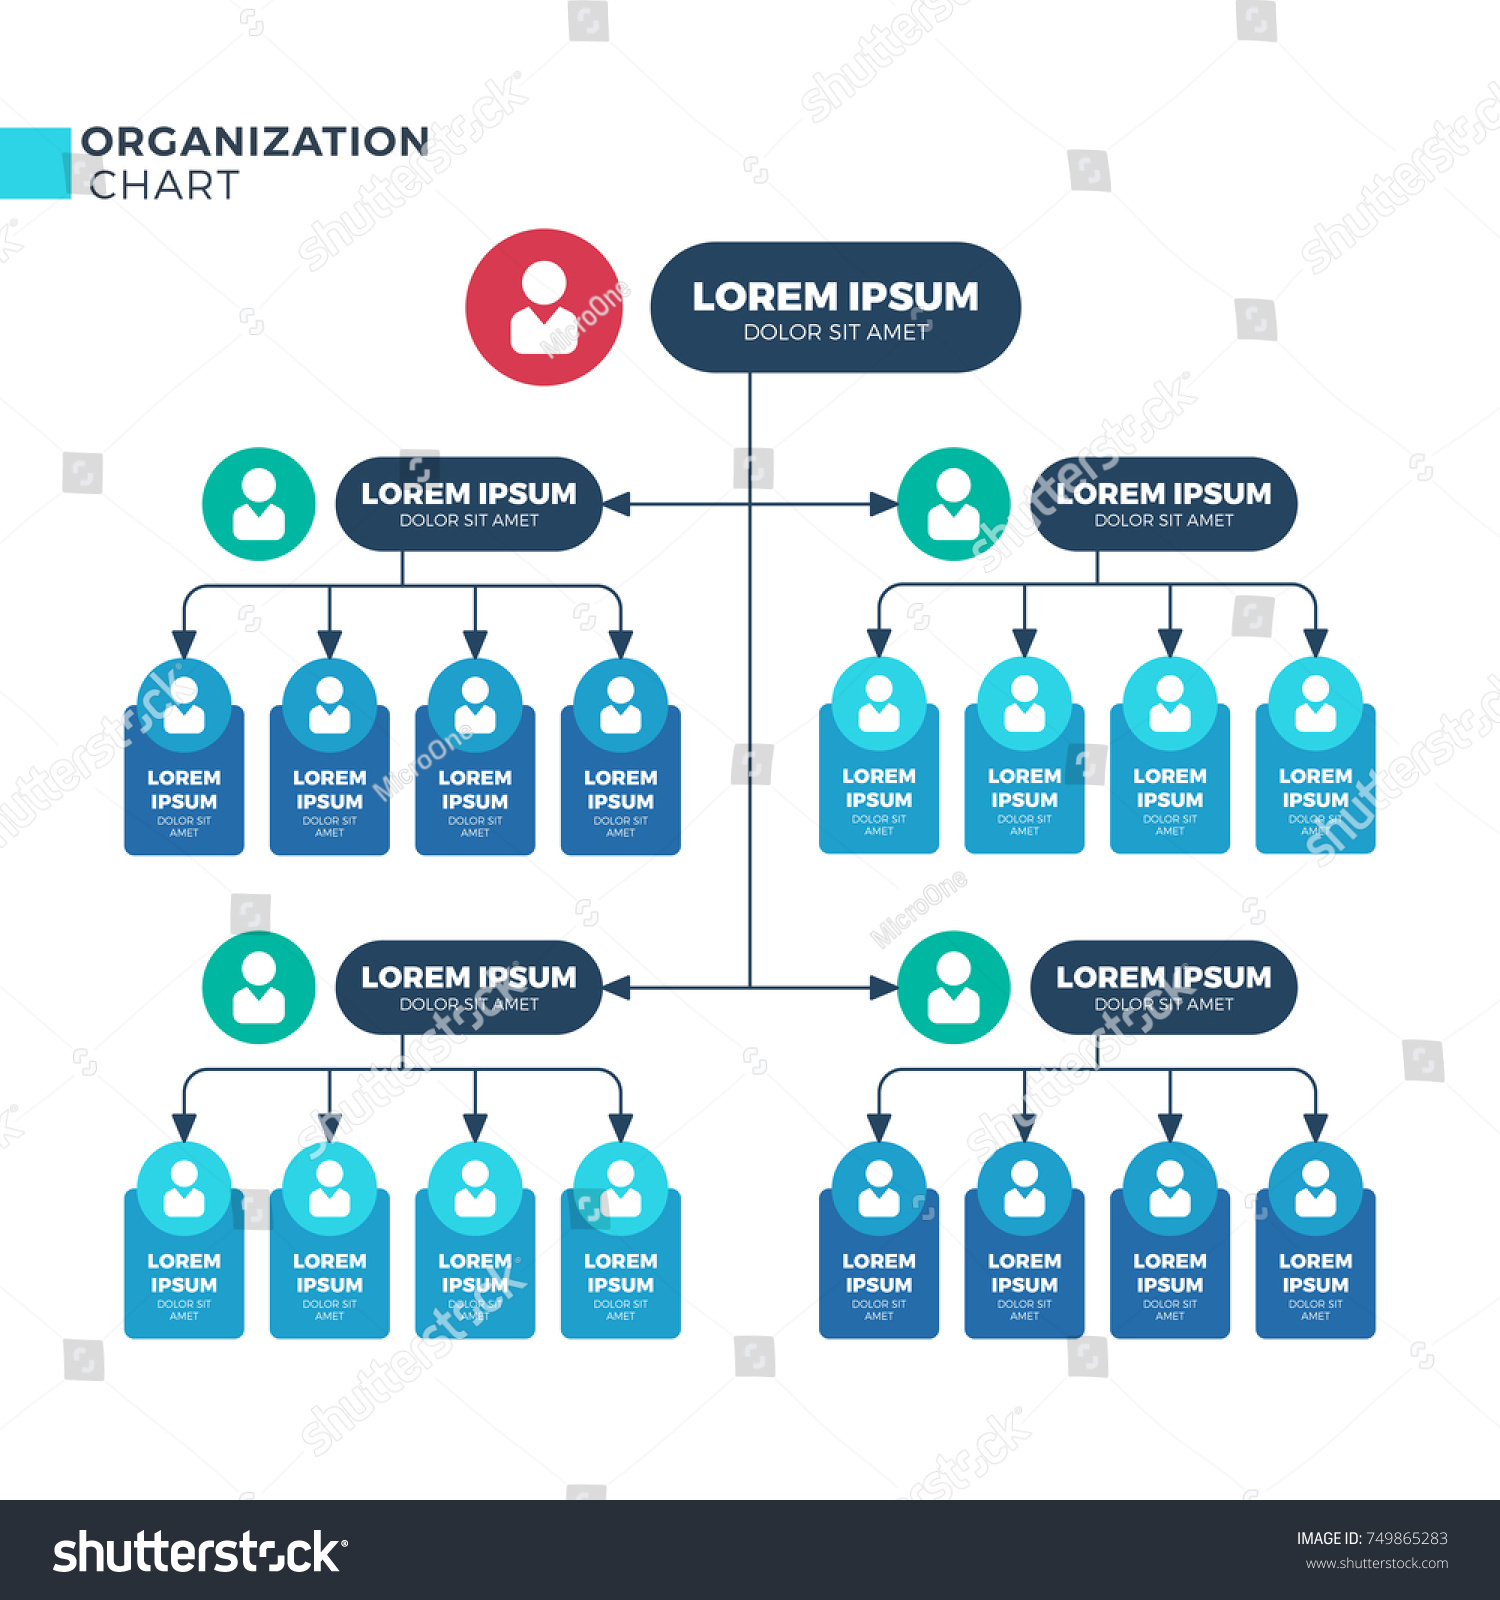 business structure organization vector organizational structural の